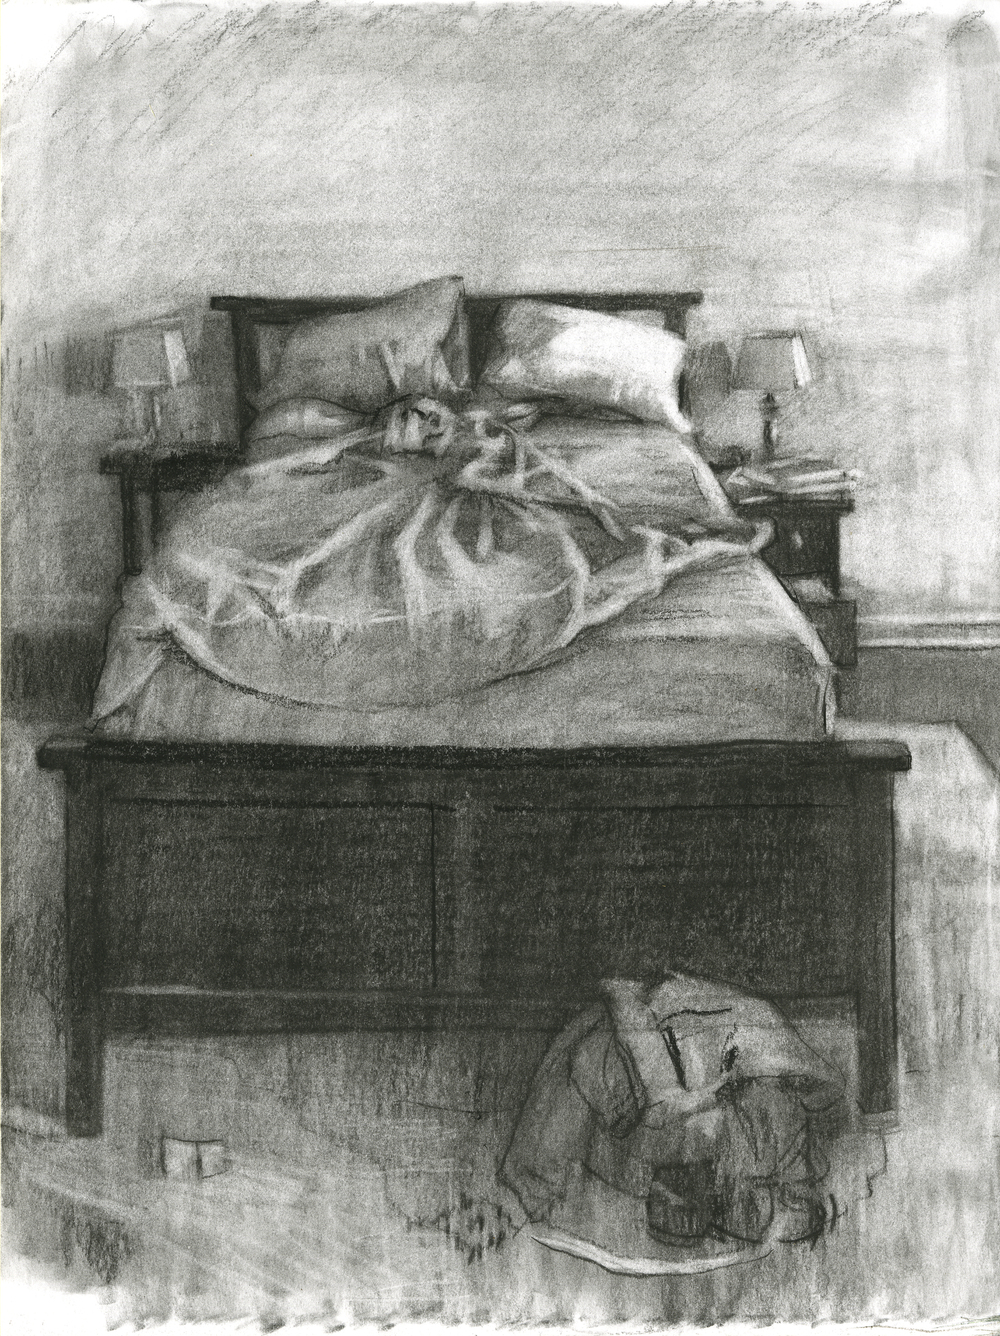 "Bedsheet Days, Charcoal on Paper, 12"" x 9"", 2016"